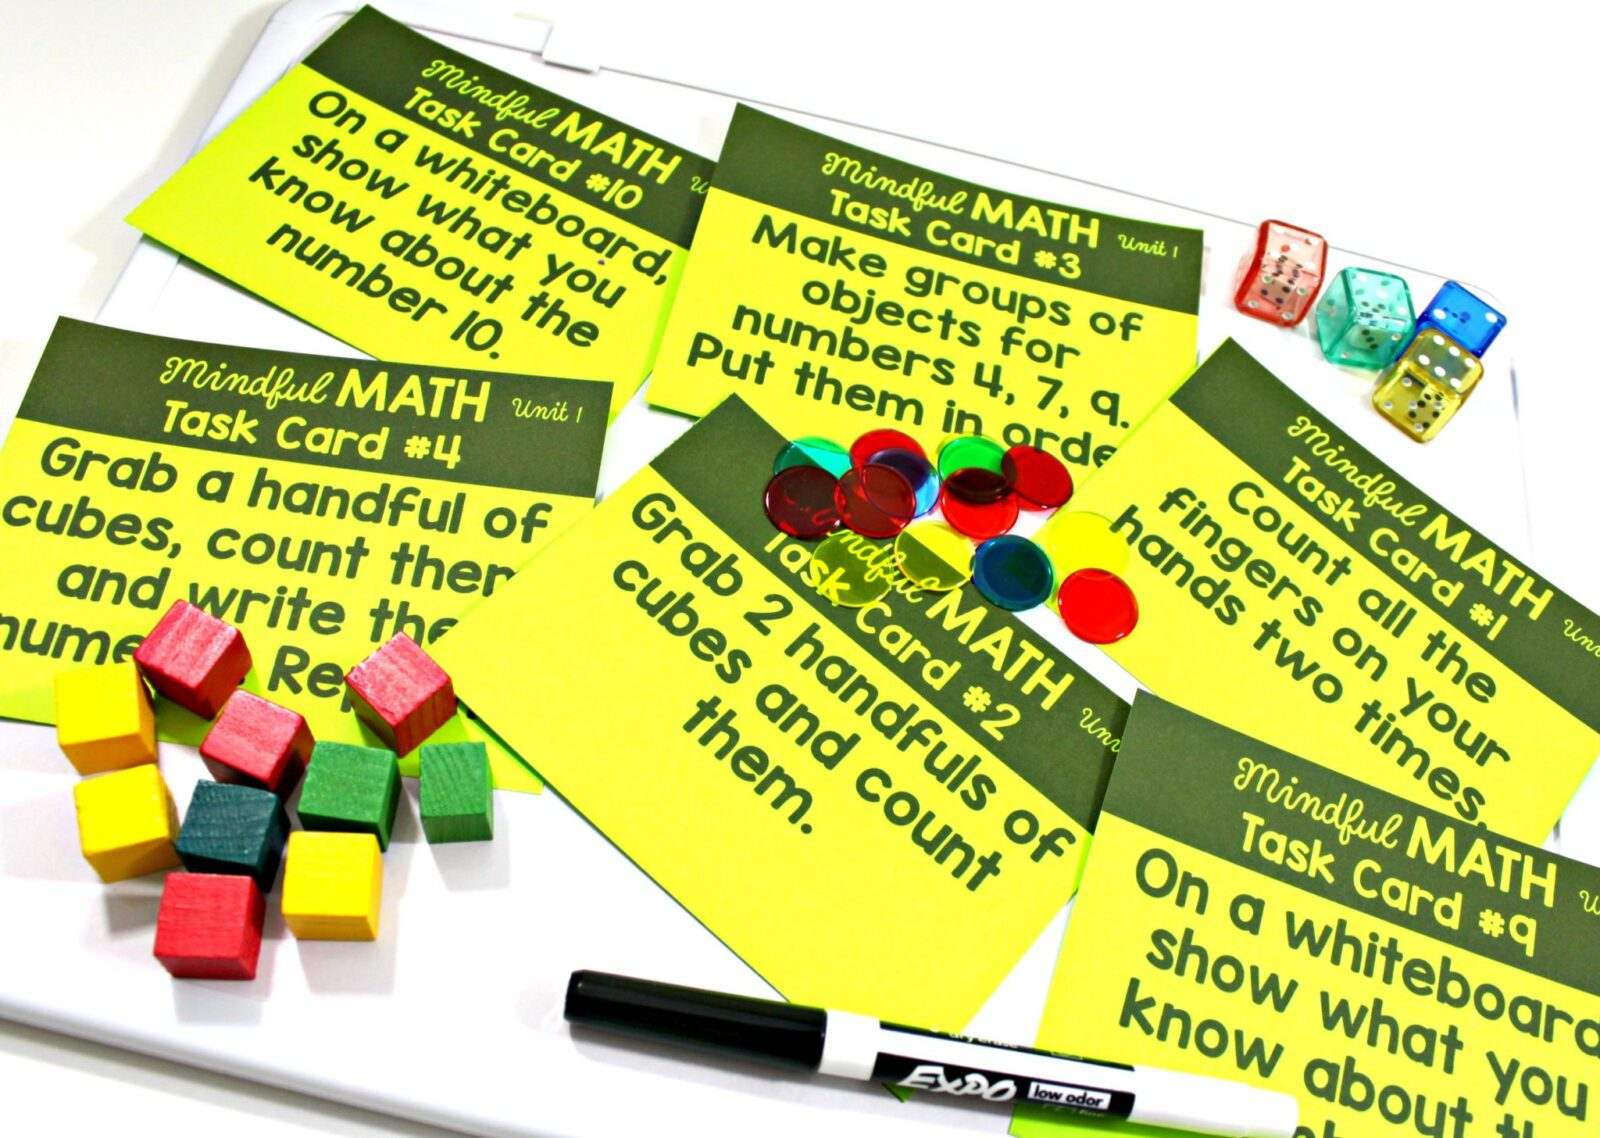 mindful math program task cards